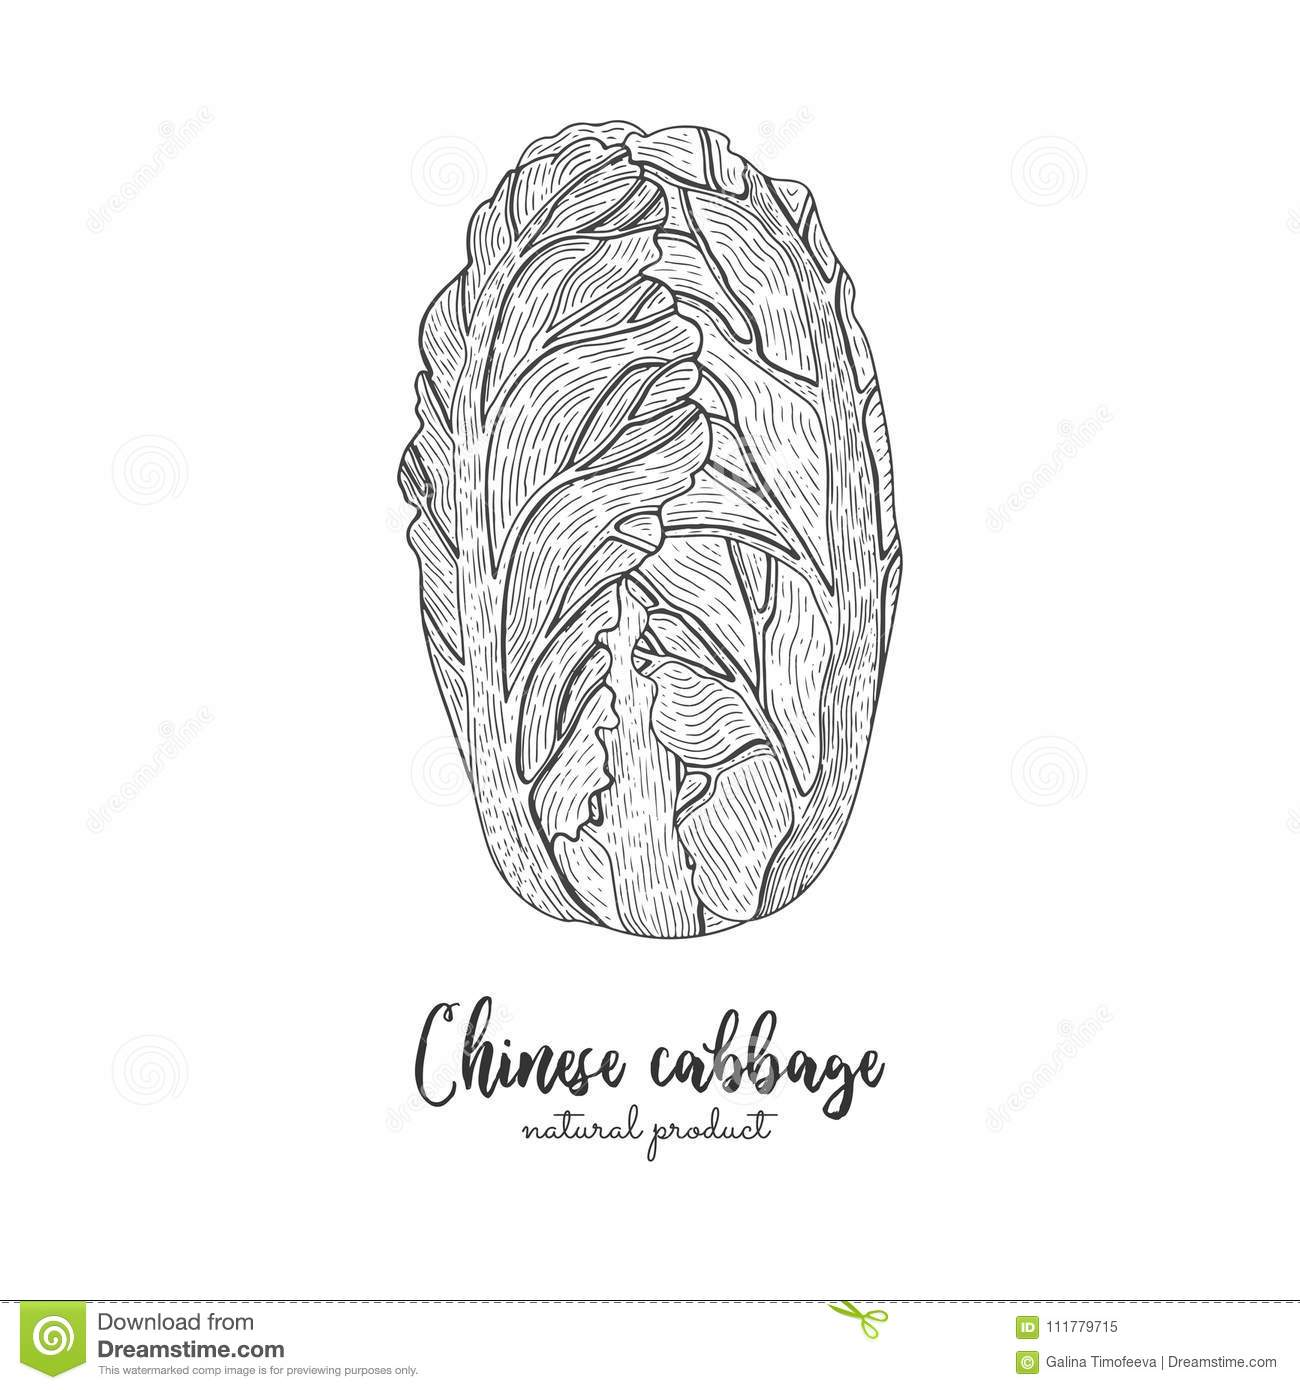 Chinese cabbage hand drawn vector illustration. Isolated vegetable engraved style object. Detailed vegetarian food